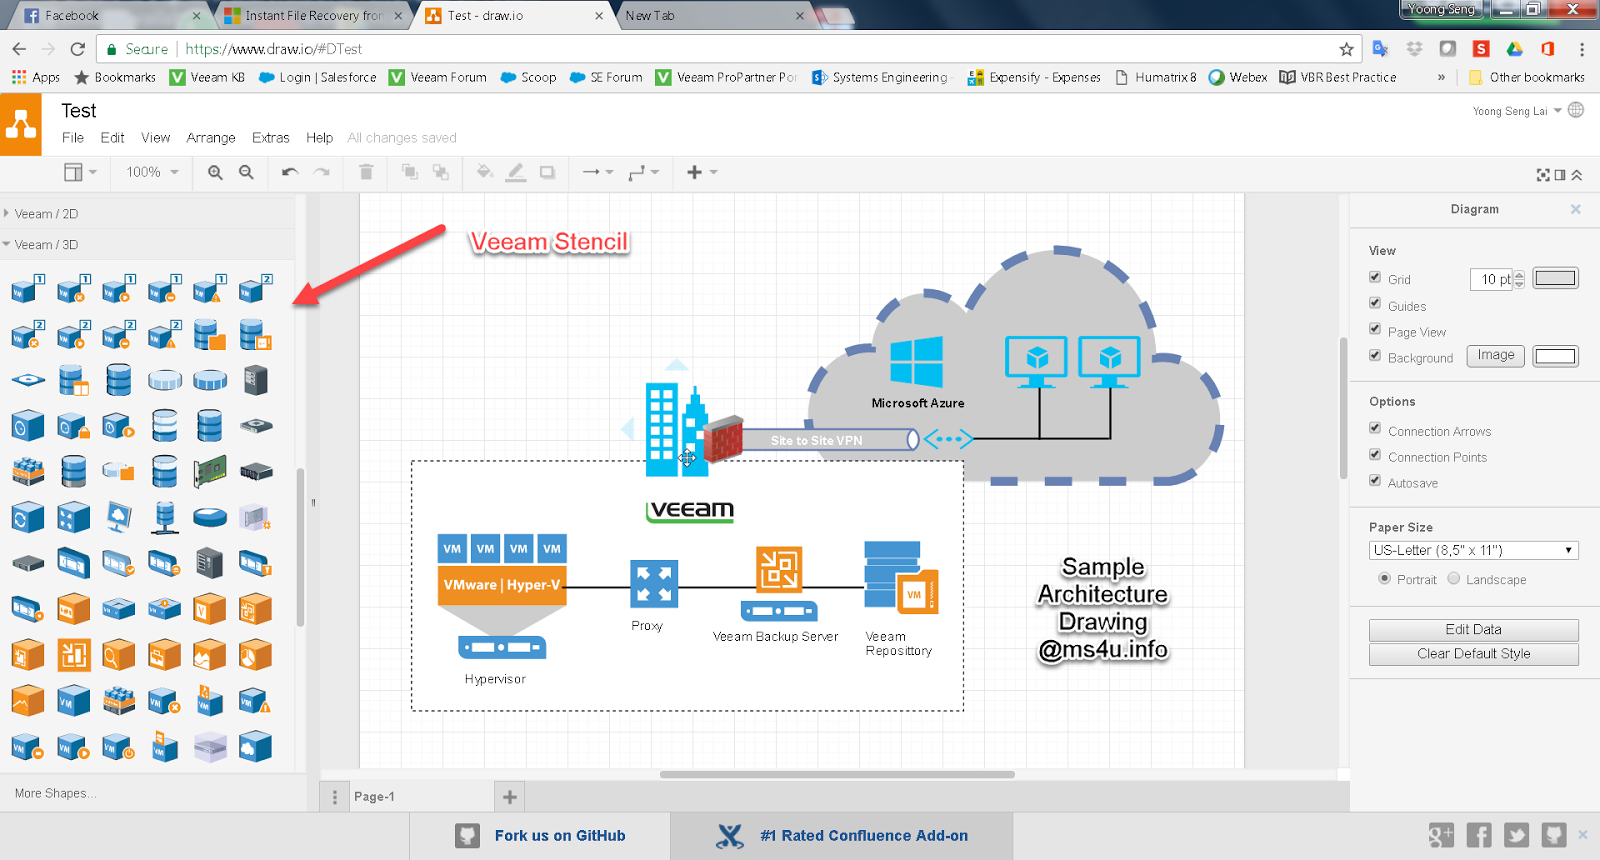 HYPERV,SYSTEM CENTER AND AZURE: Free Online Drawing